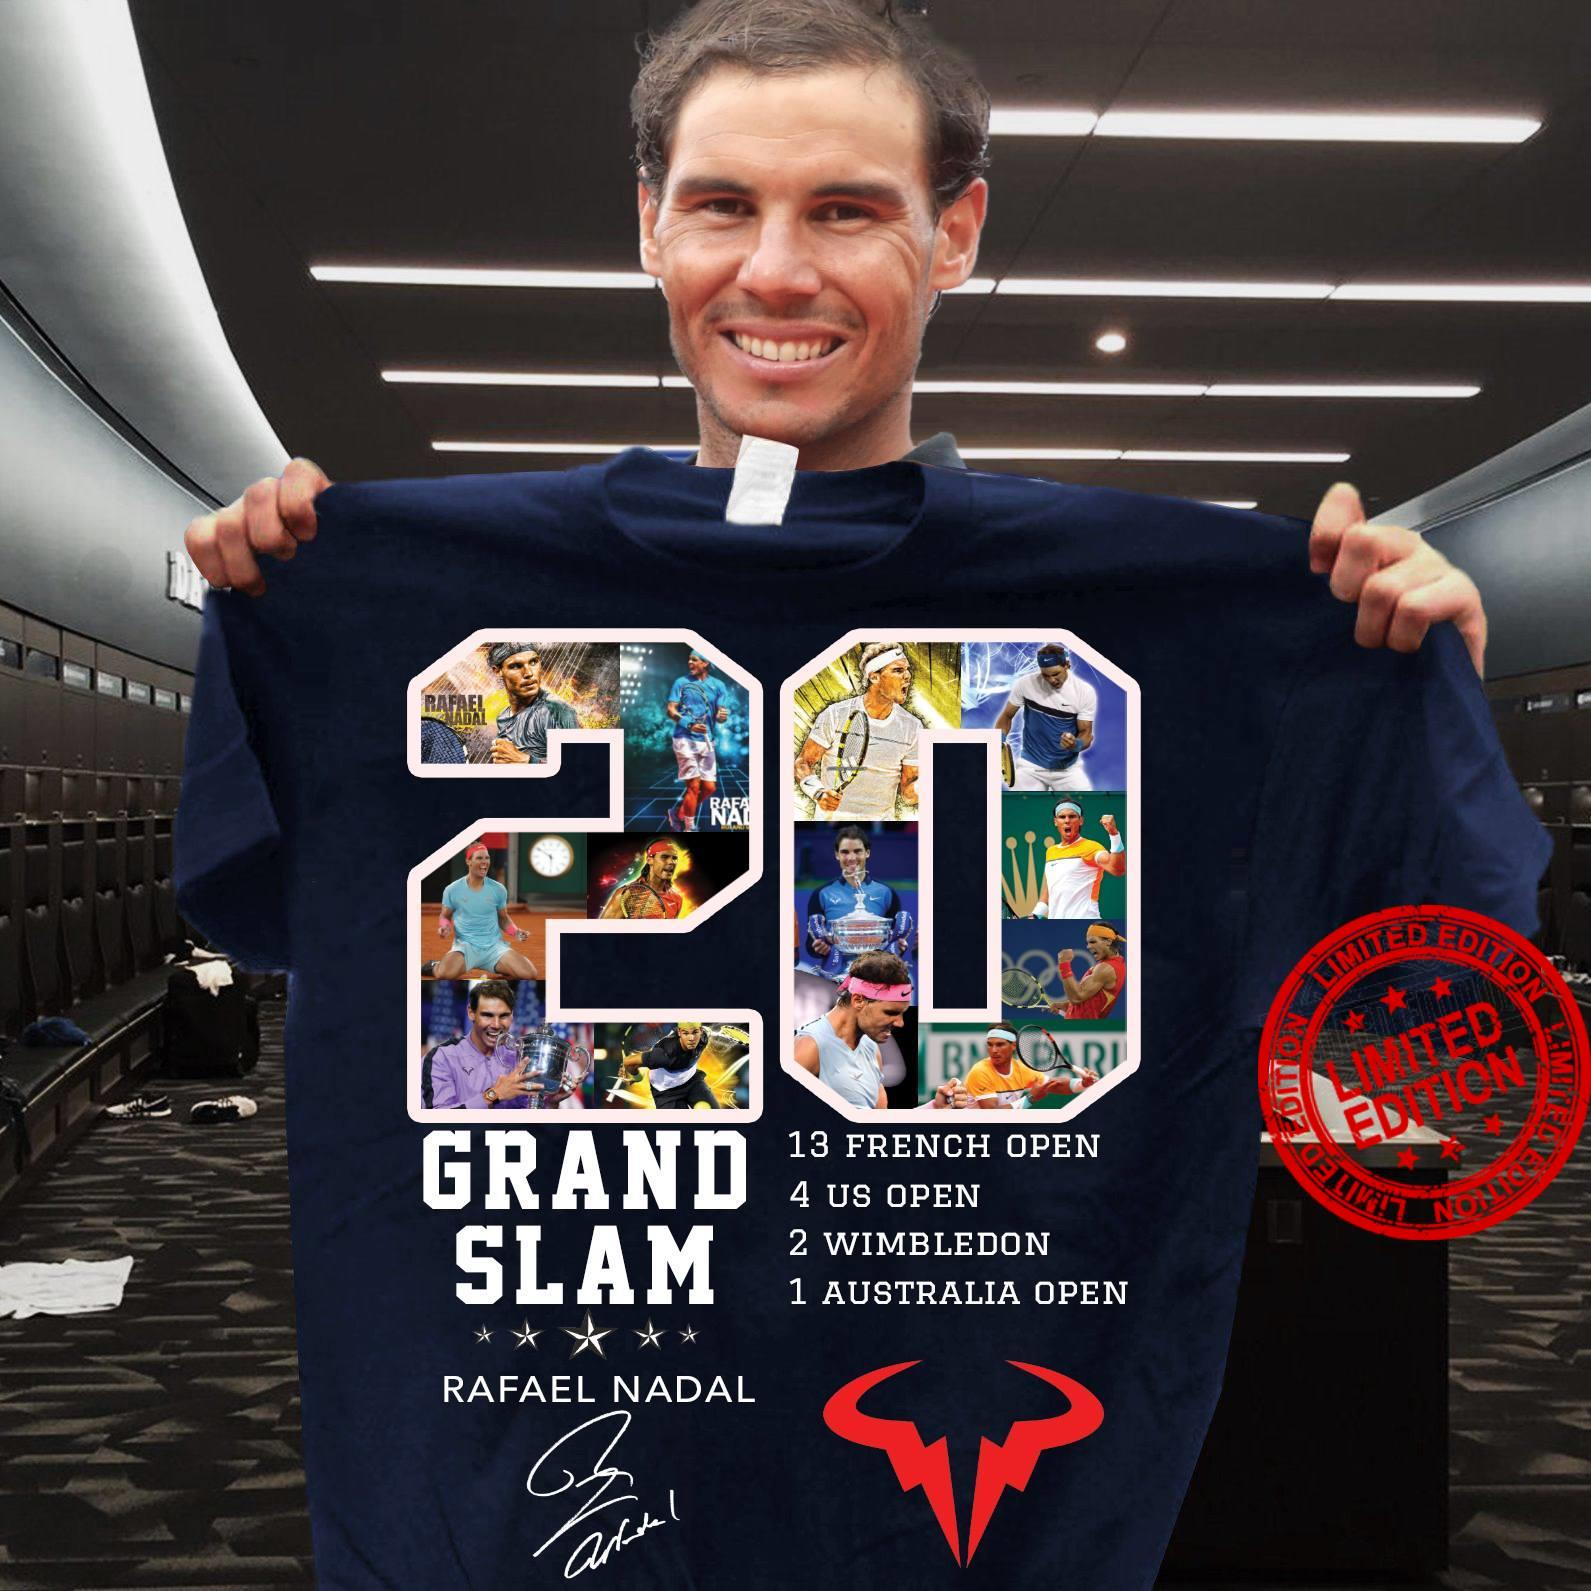 20 Grand Slam 13 French Open 4 Us Open 2 Wimbledon 1 Australia Open Rafael Nadal Shirt